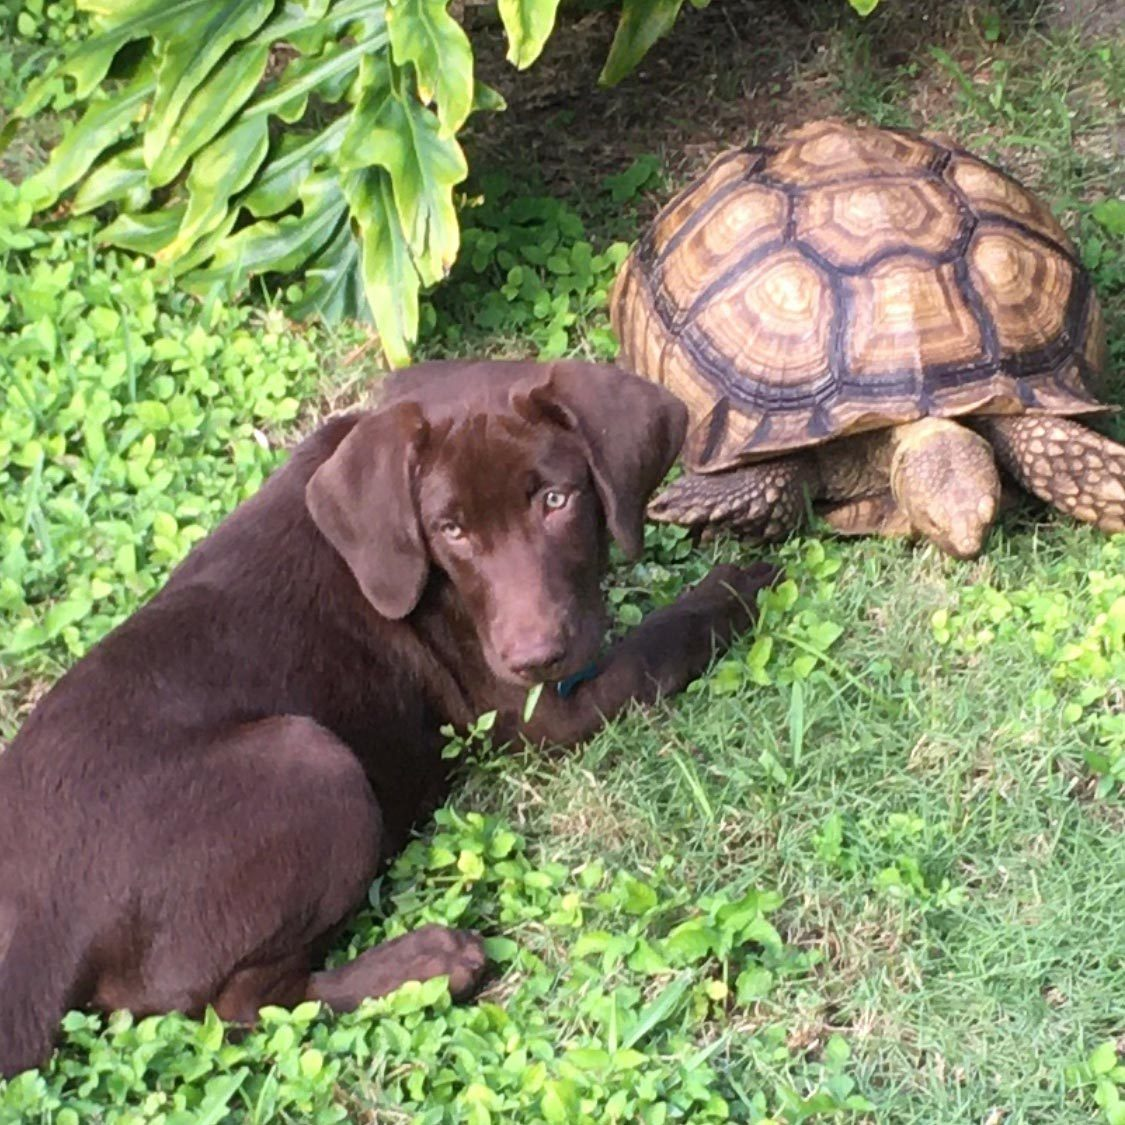 dog and turtle hang out together in the grass